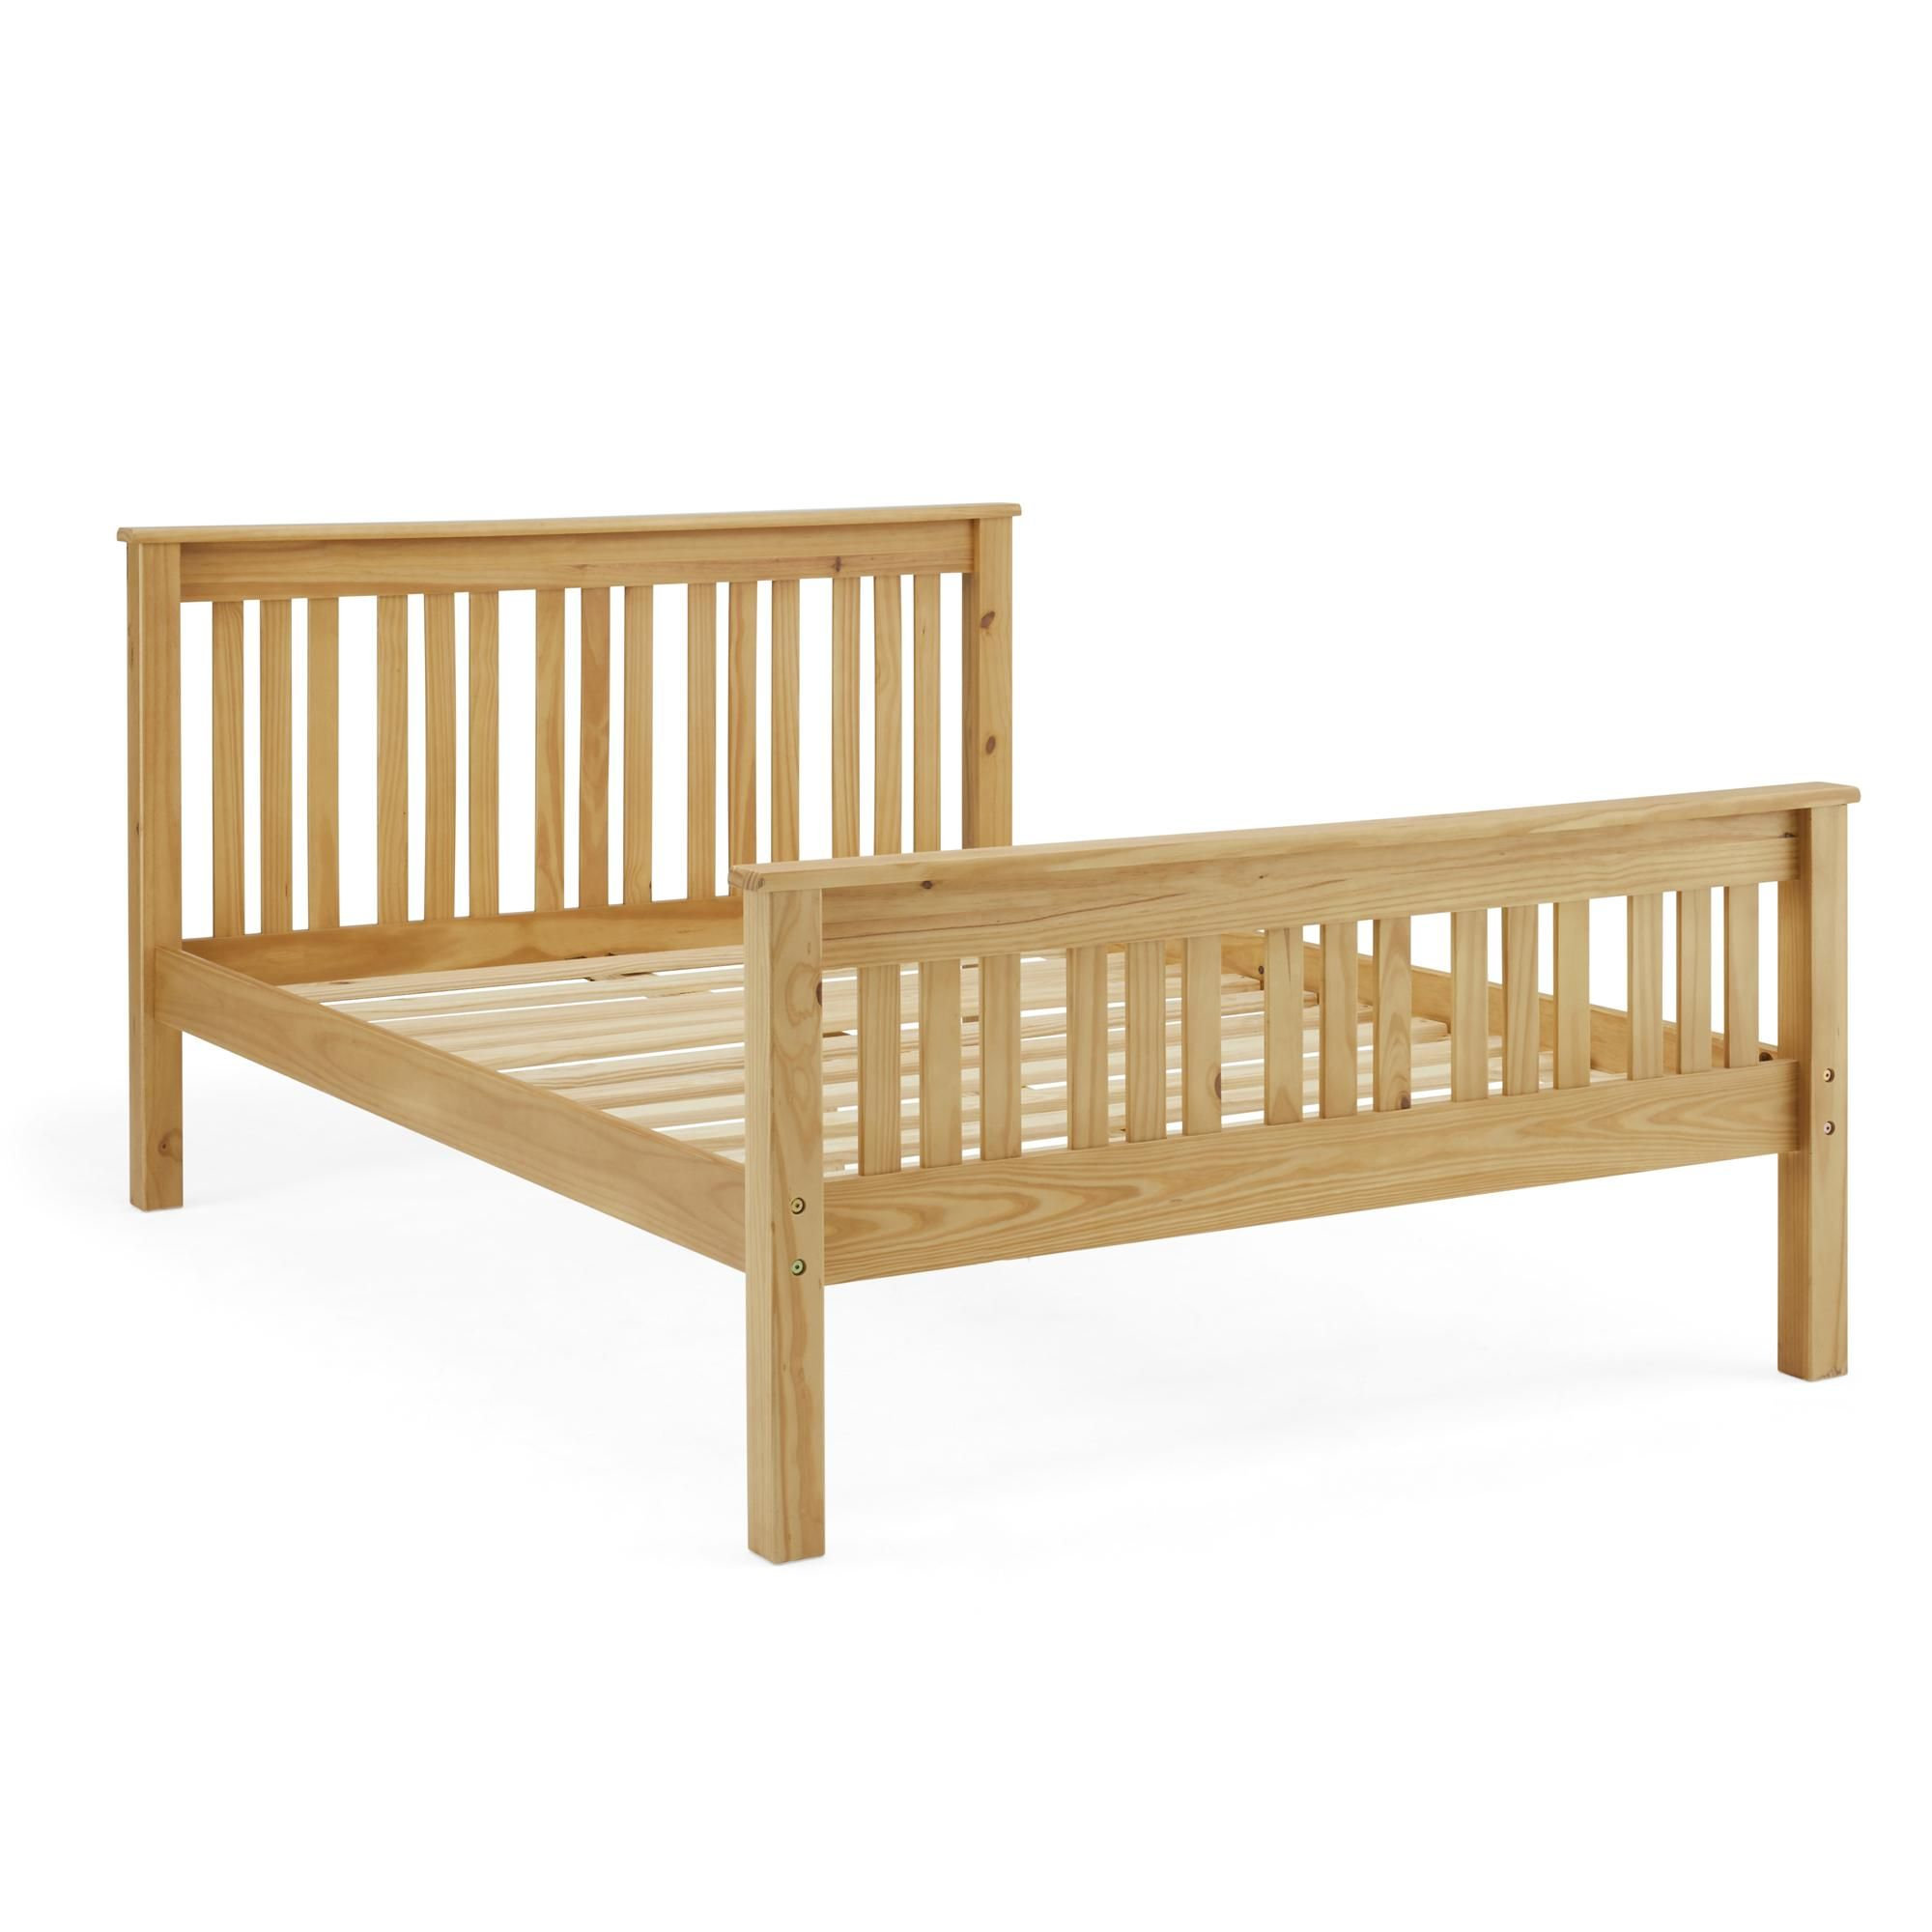 Shaker Style Wooden Bed Natural In 2020 Shaker Style Bed